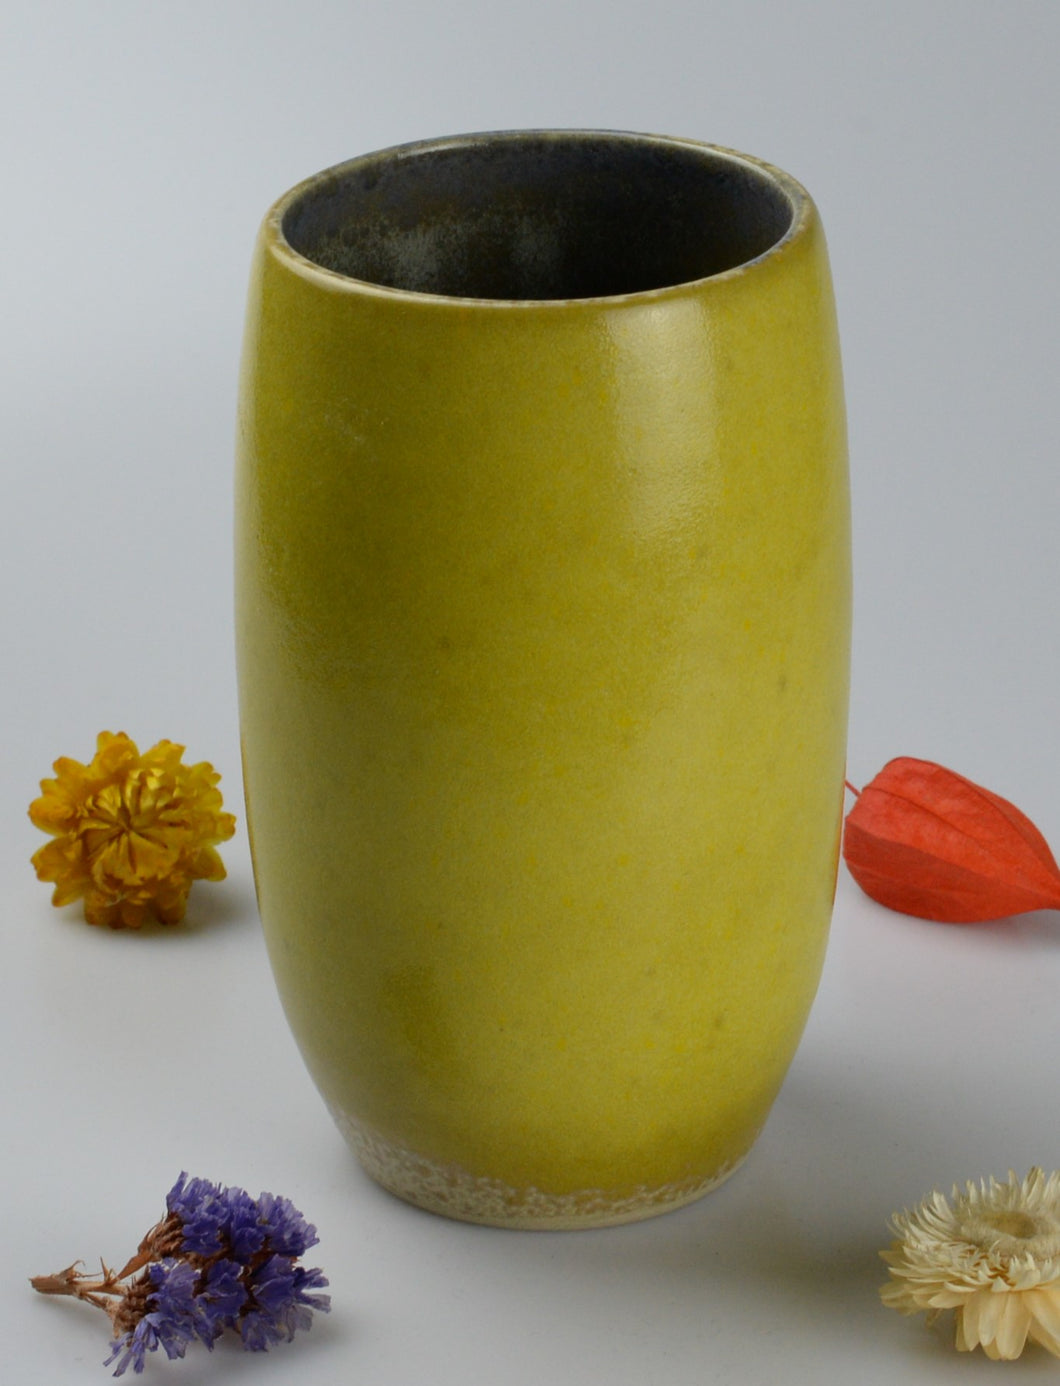 Unique ceramic vase - yellow